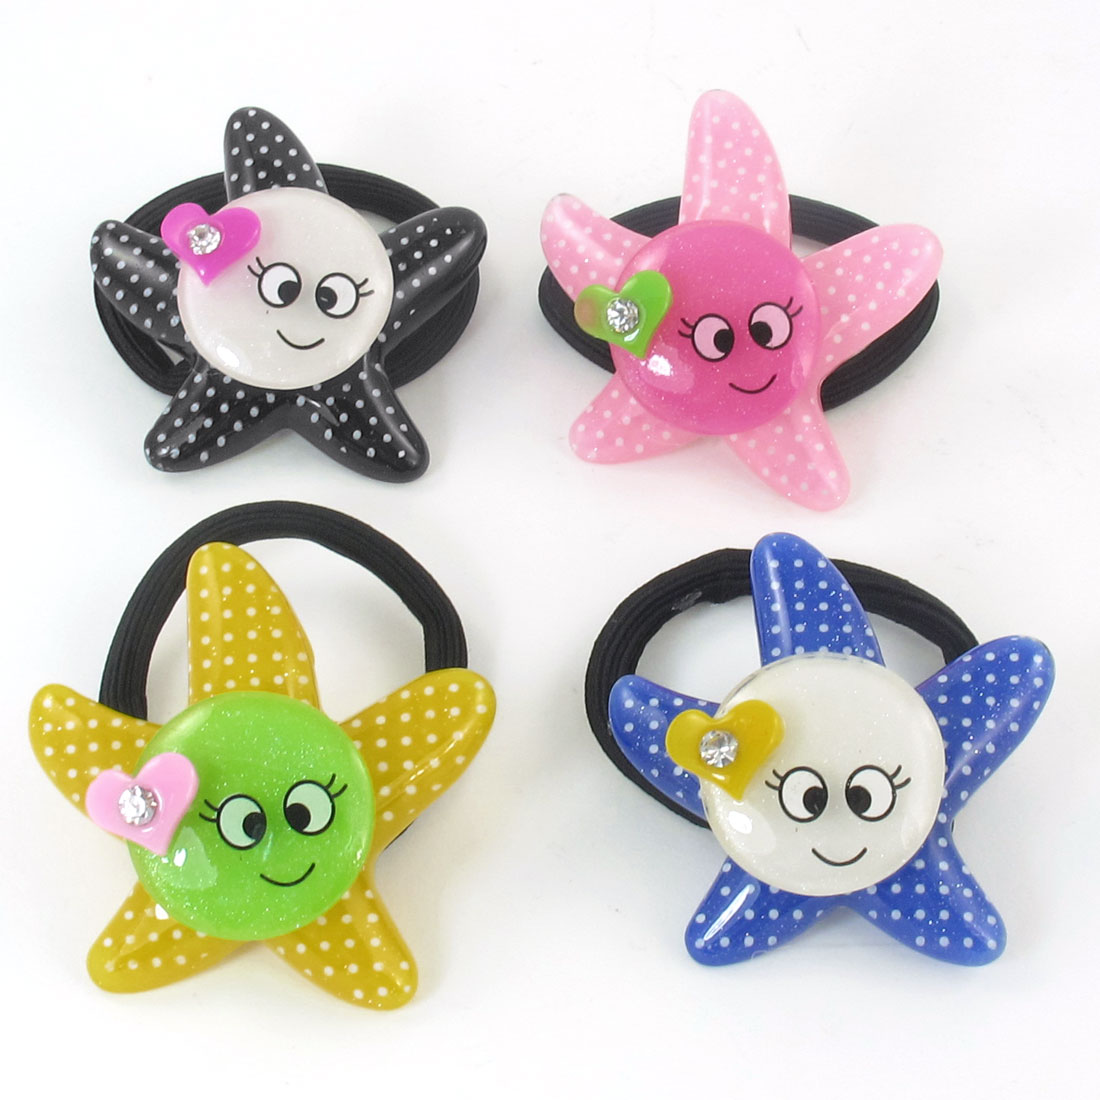 4pcs Round Smile Face Detail Hair Tie Stretchy Ponytail Holder for Girls